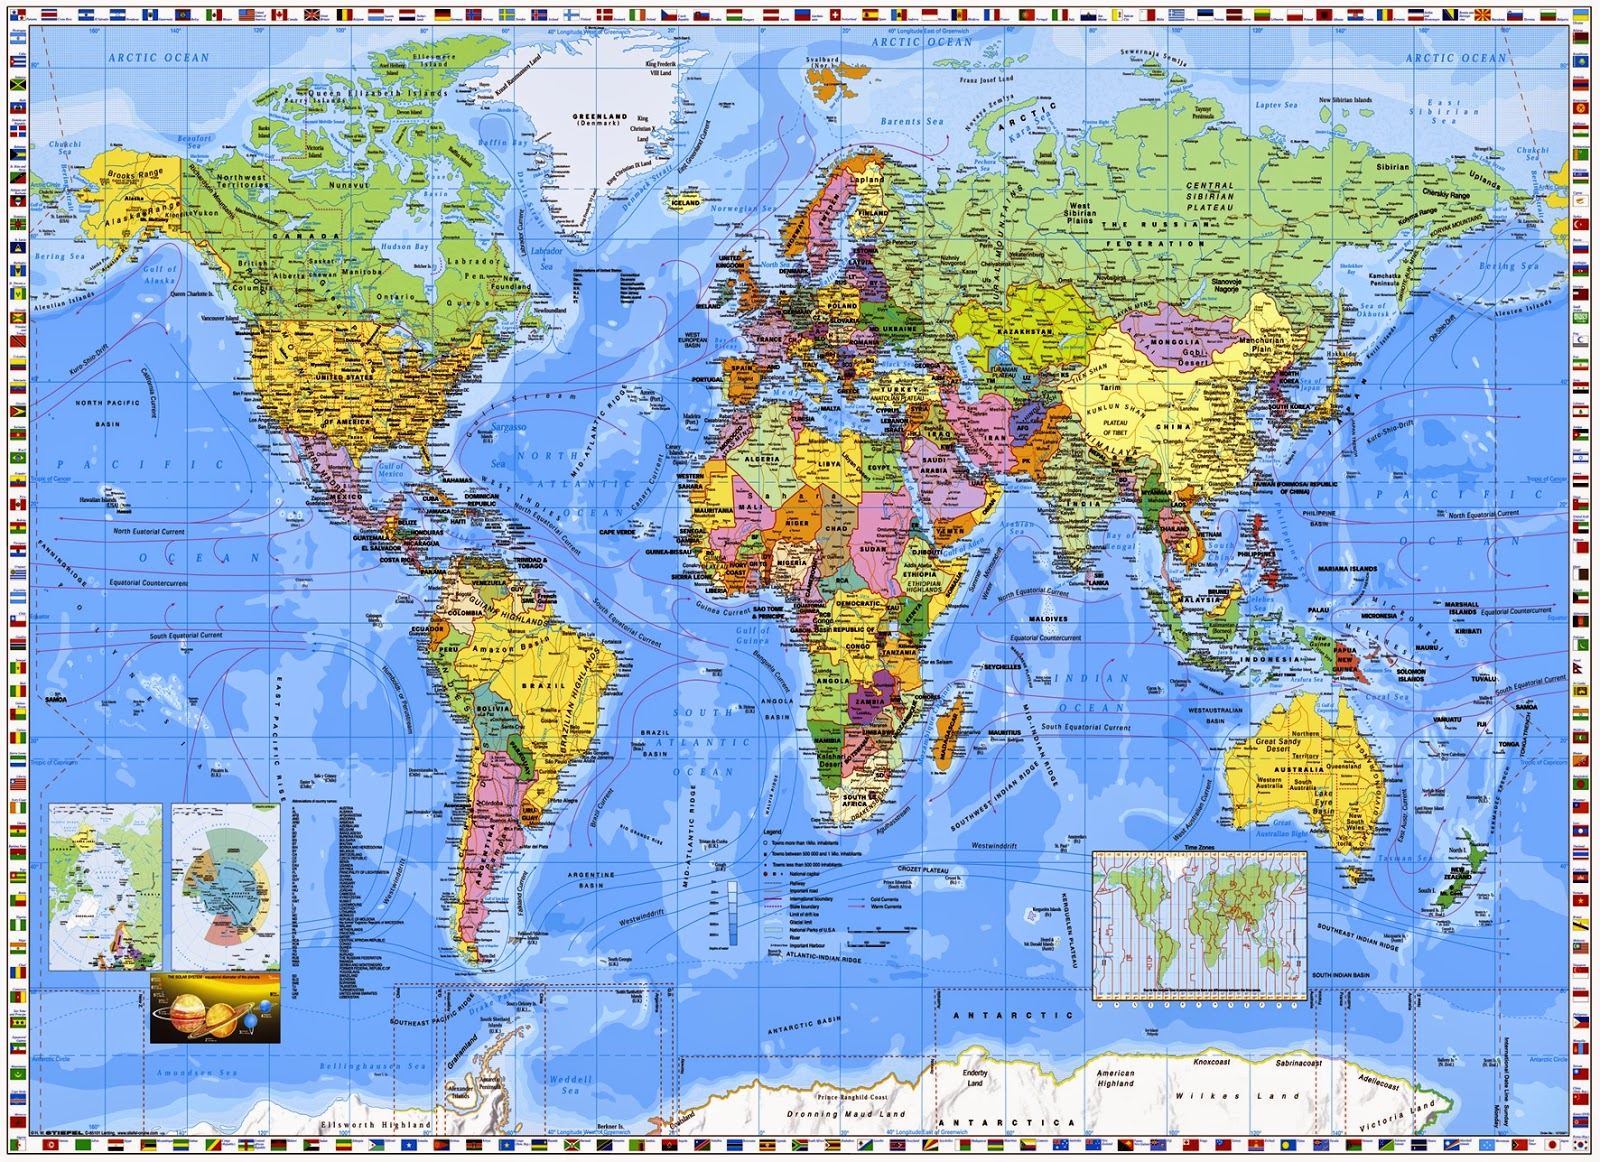 World map desktop wallpaper hd wallpapersafari world map wallpaper for walls world map desktop wallpaper world map 1600x1162 gumiabroncs